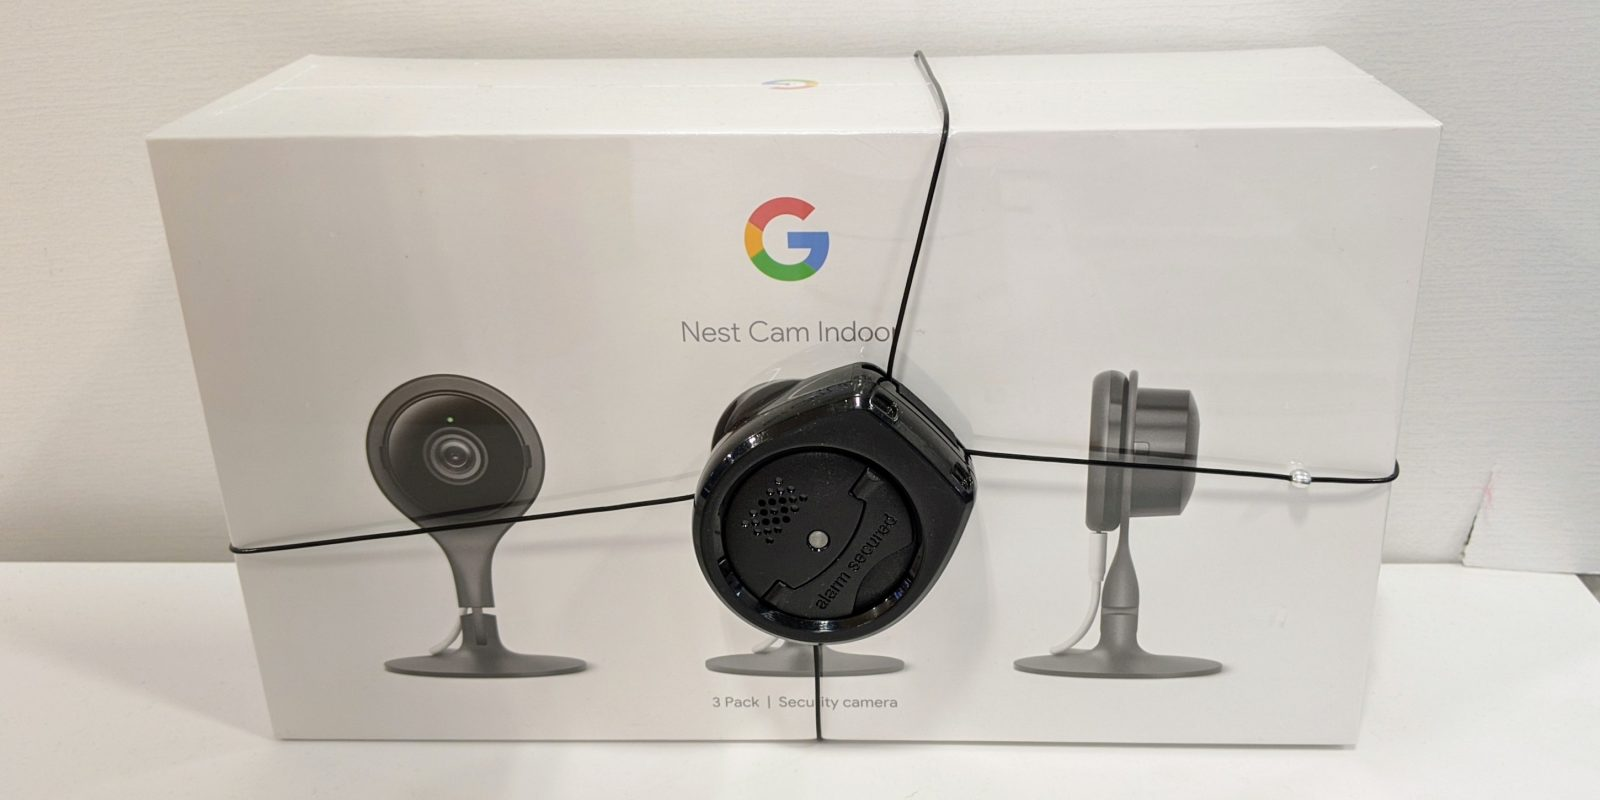 Existing Nest products get new Google Nest packaging